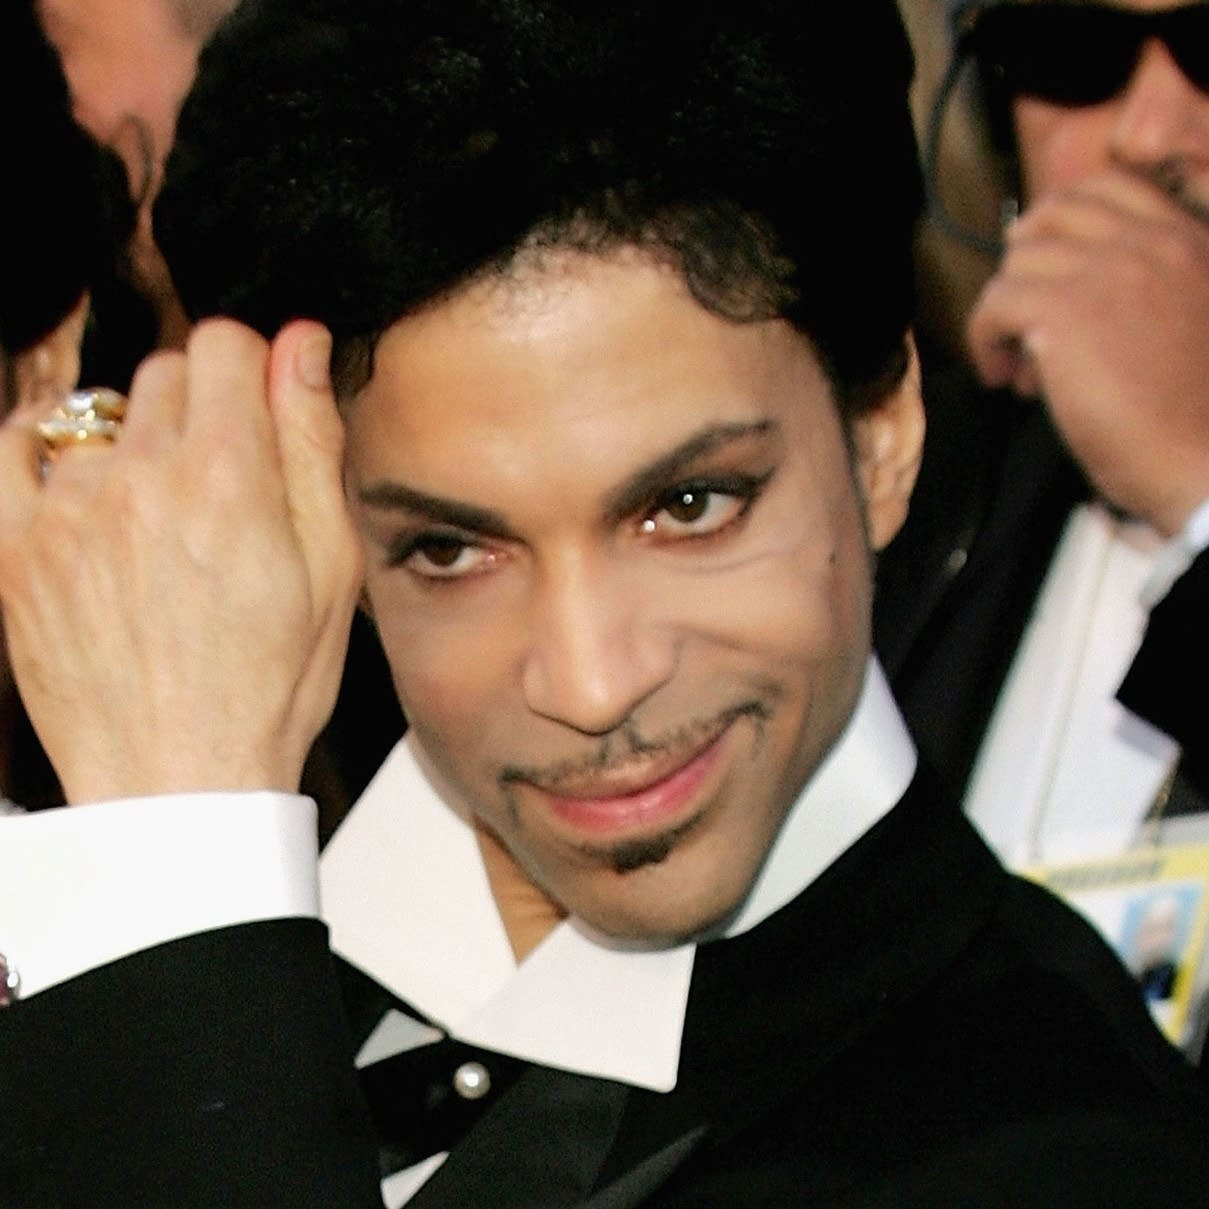 Prince arrives at the 77th annual Academy Awards